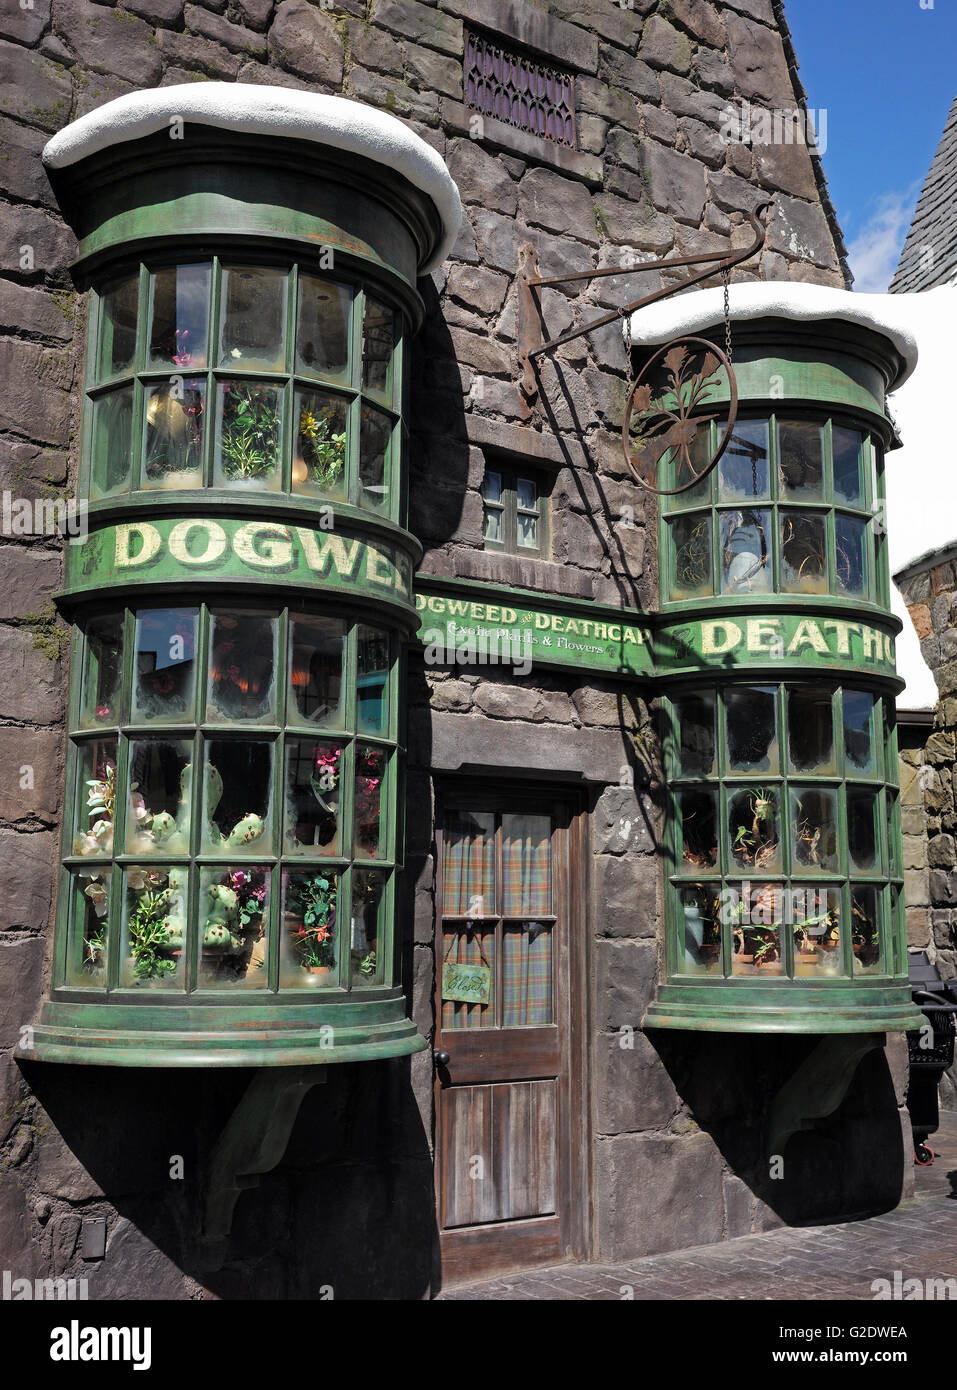 Dogweed Death shop at Harry Potter World, Universal Studios in California. Stock Photo